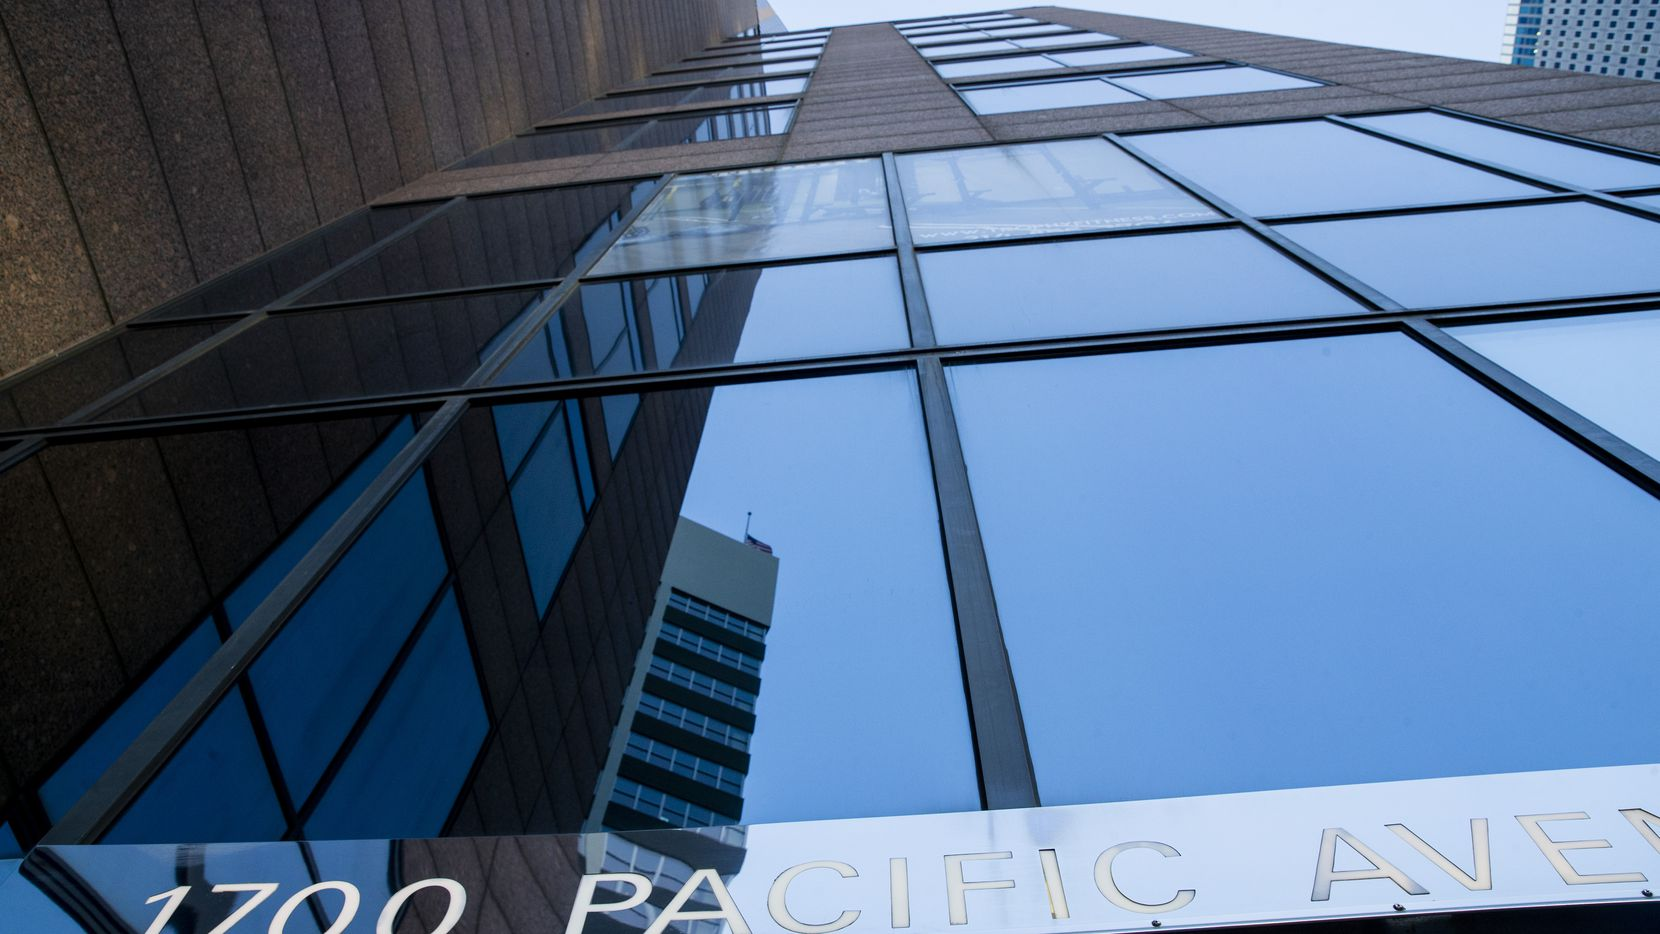 The 1700 Pacific tower in downtown Dallas is getting a major upgrade.